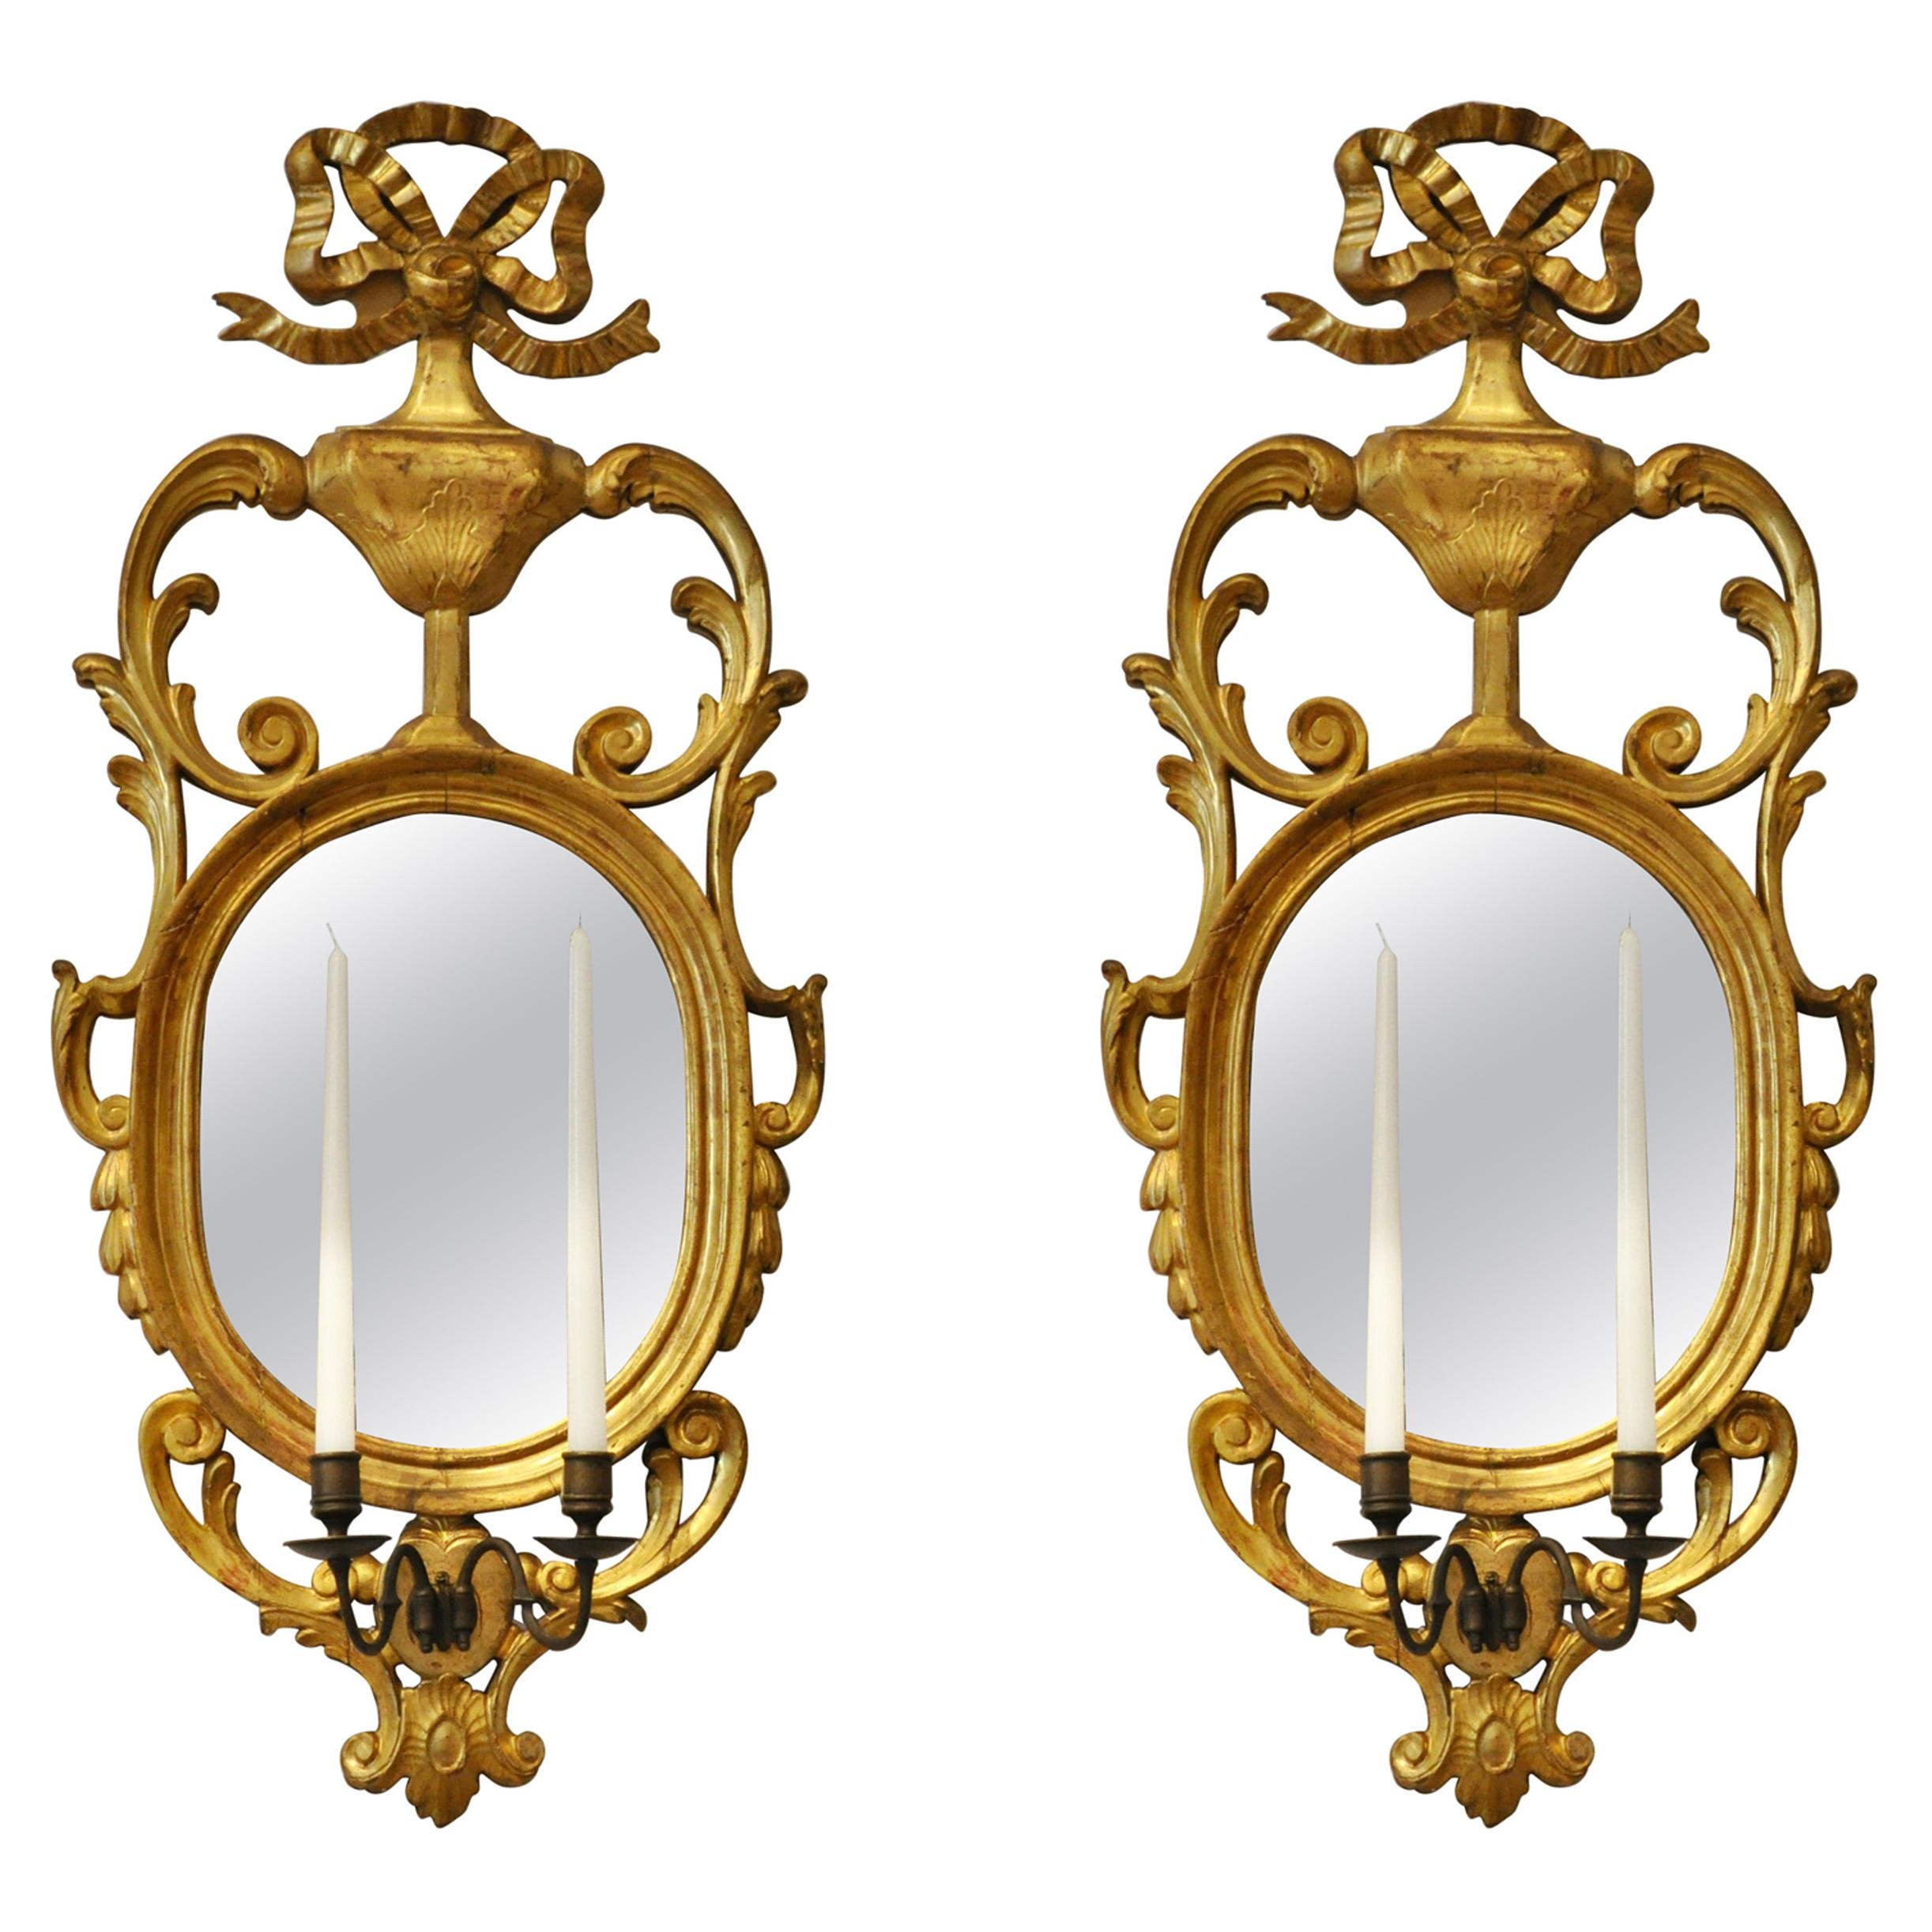 Pair of Early 19th Century Continental Neoclassical Giltwood Sconce Mirrors